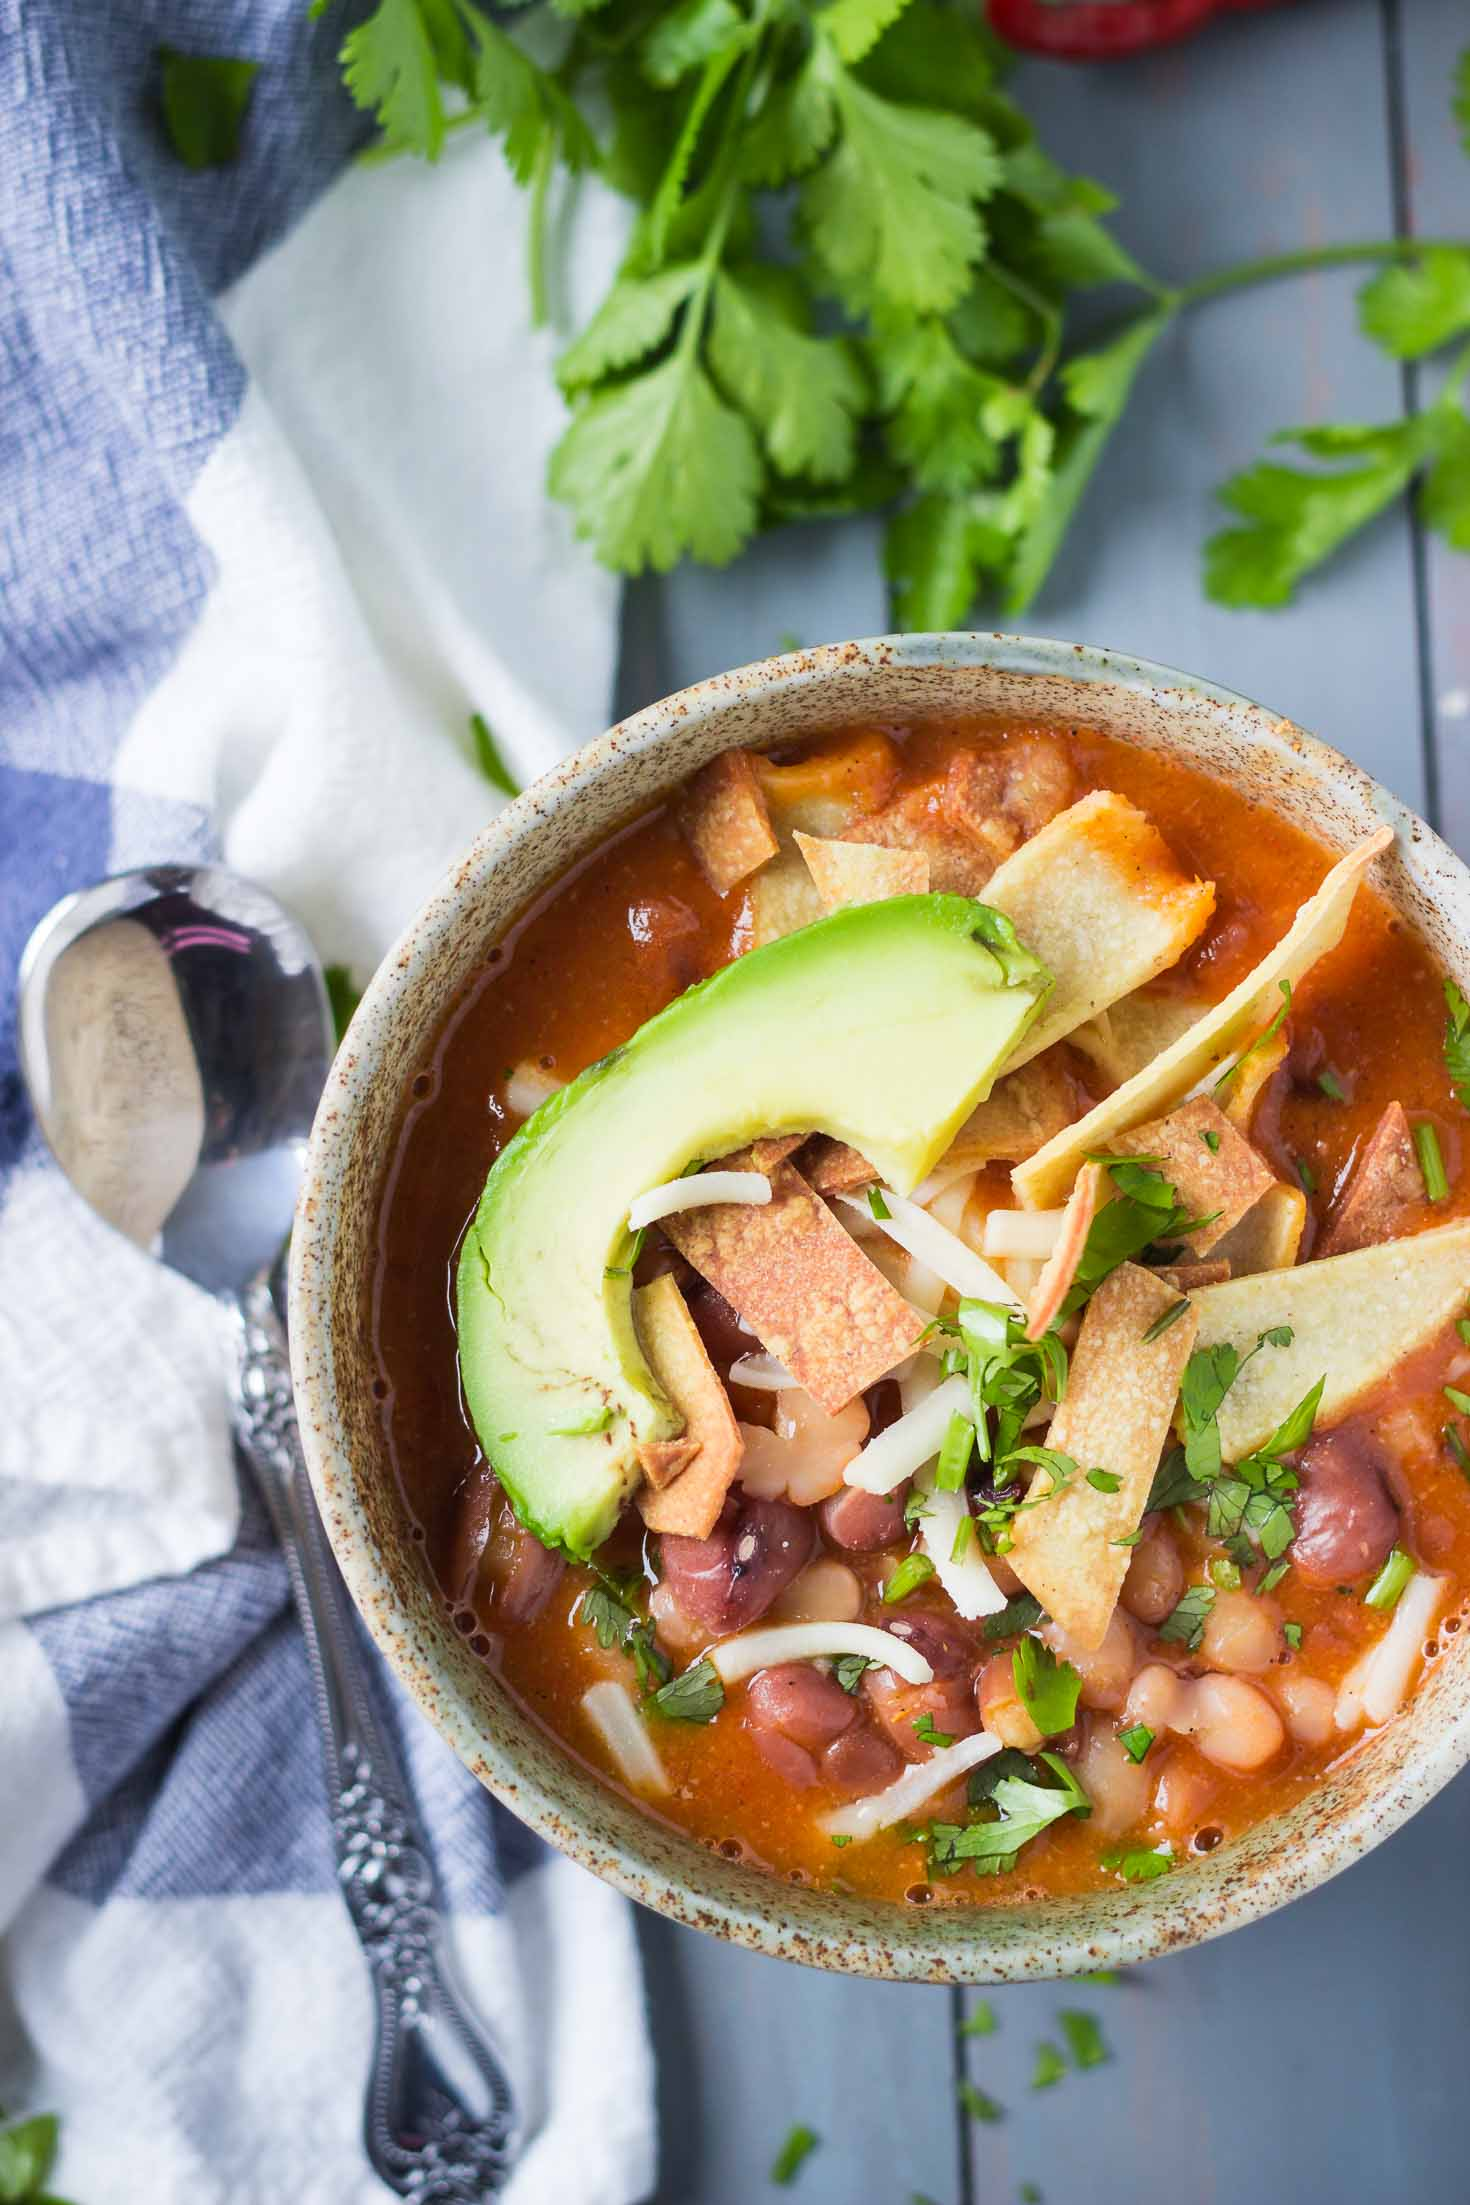 3-Bean Vegan Enchilada Soup-cilantro-avocado-spoon-top view